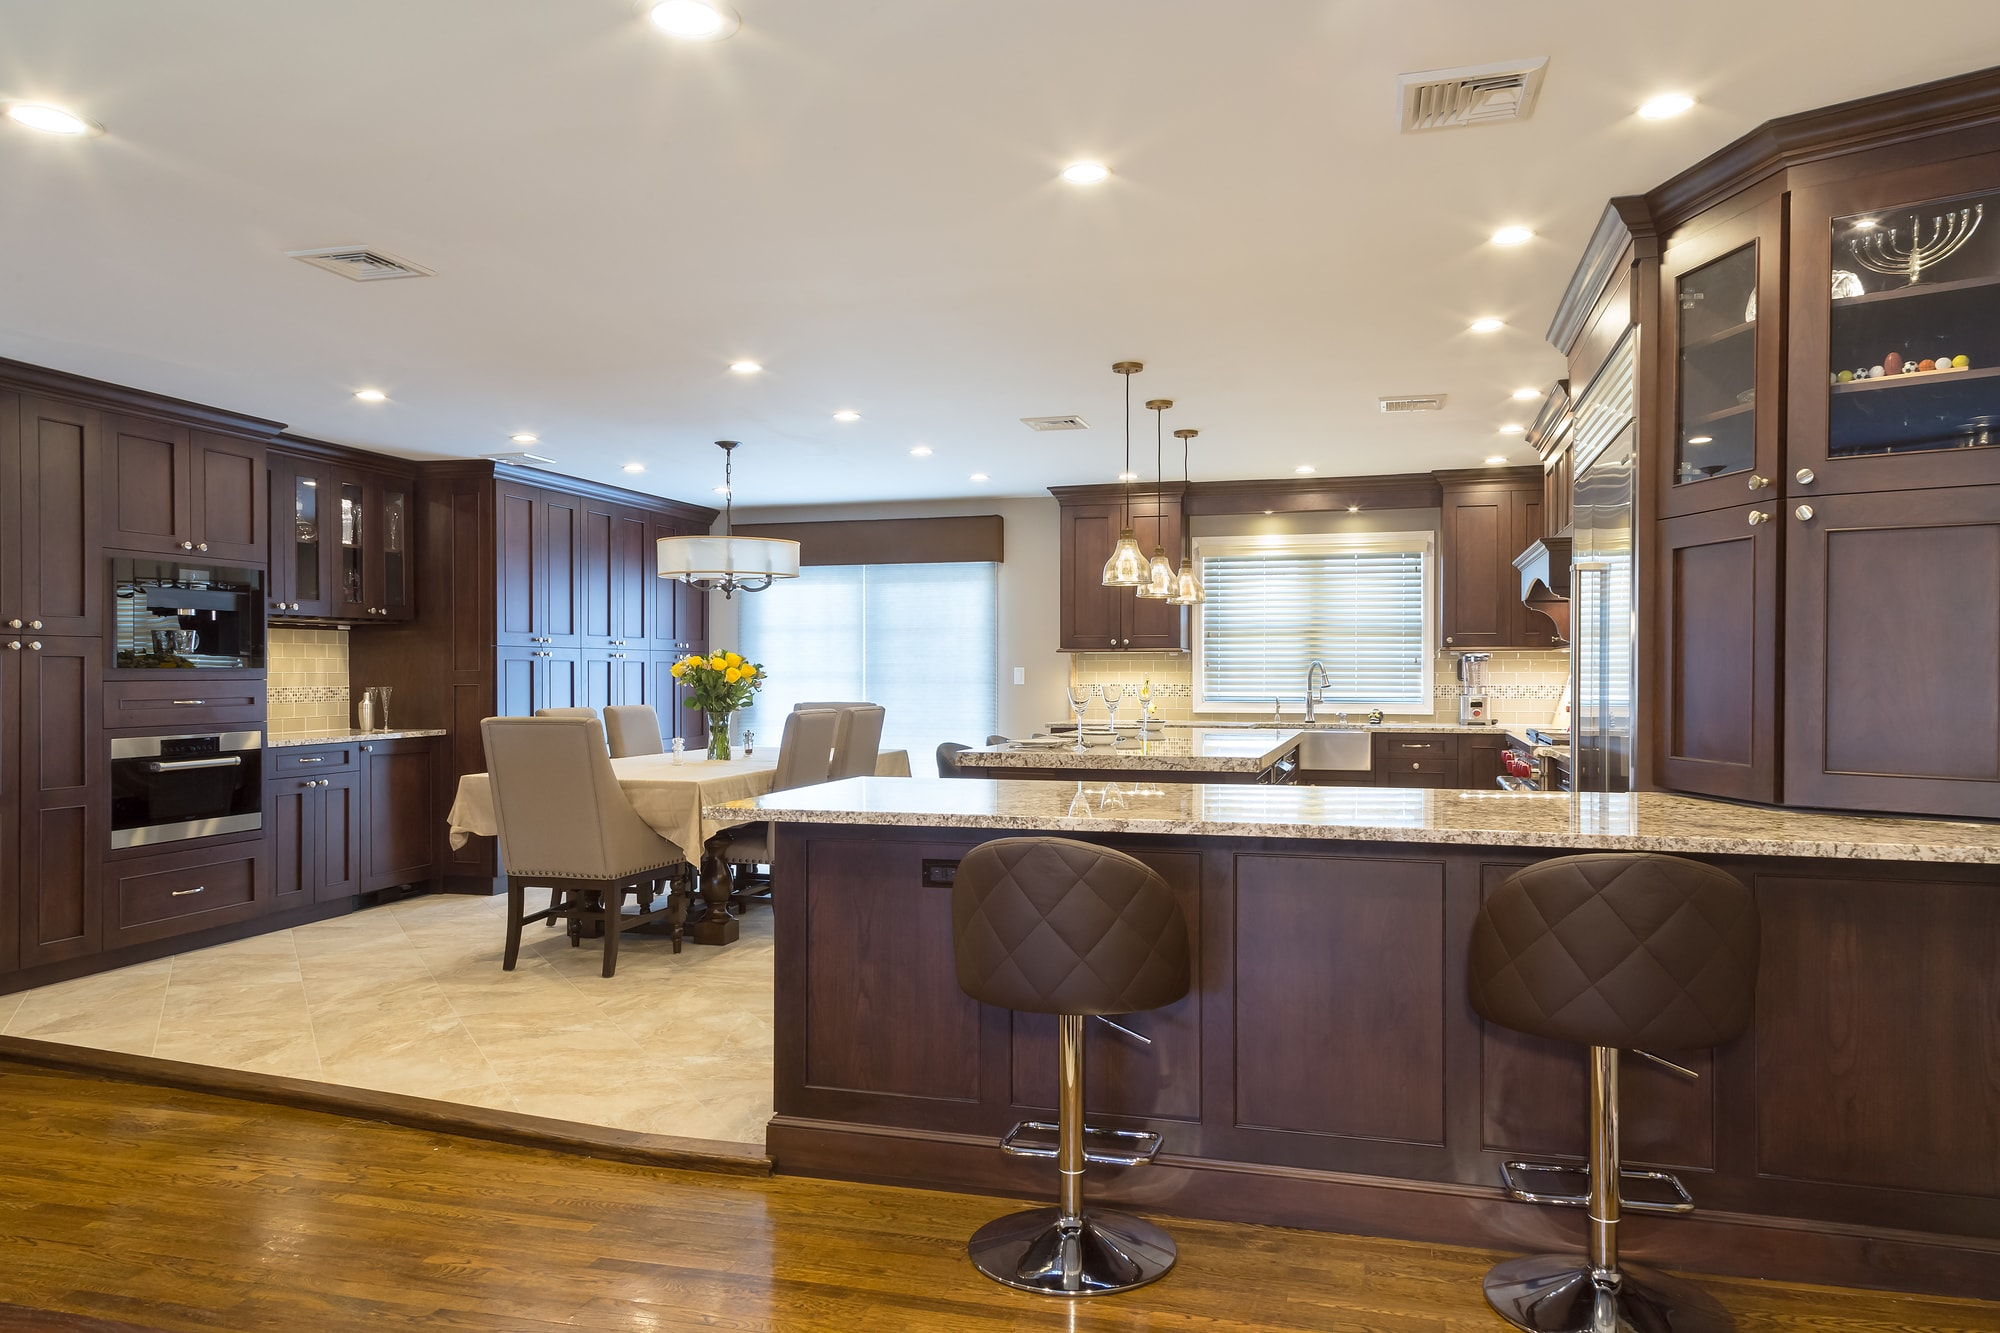 Traditional style kitchen with elevated kitchen floor